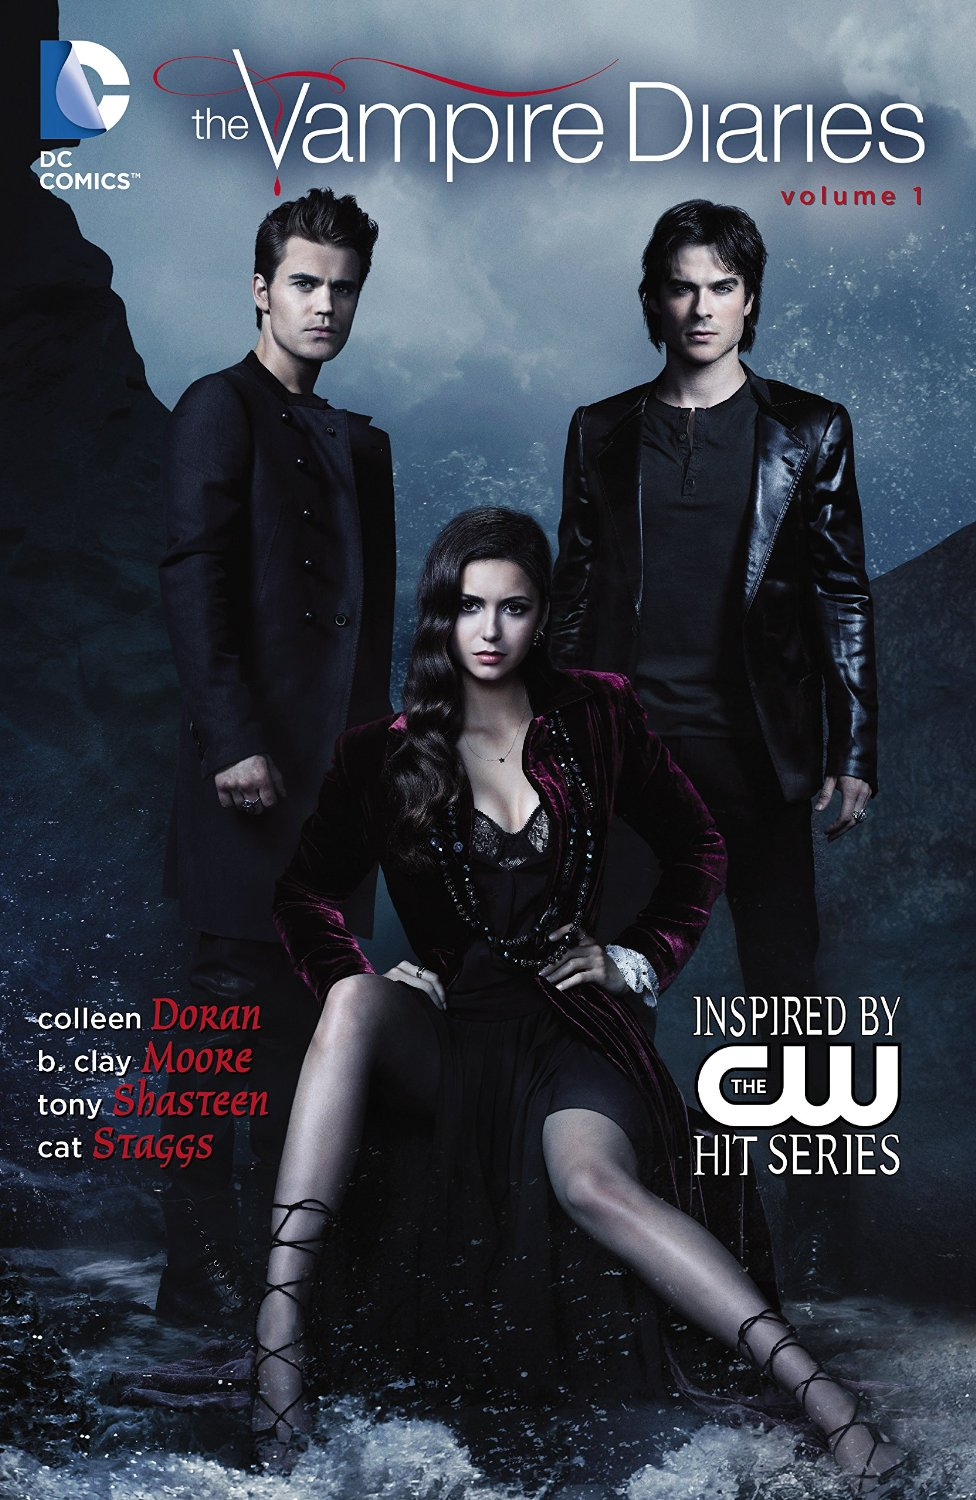 The Vampire Diaries Vol. 1 (Collected)